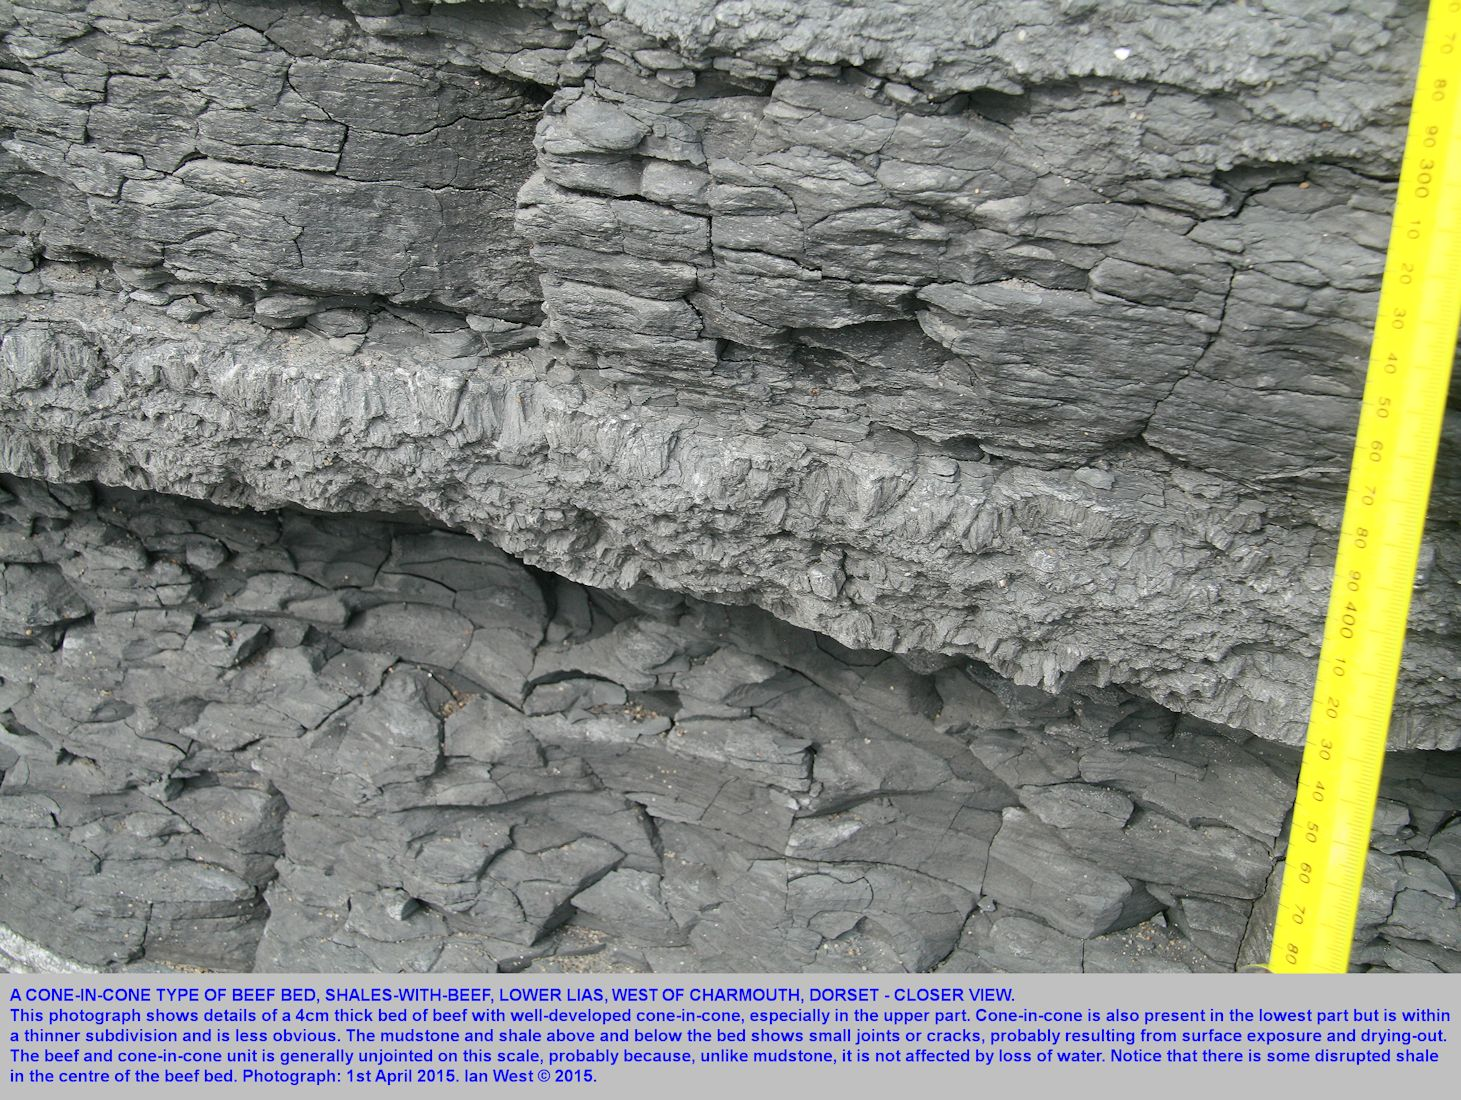 A closer view of a beef layer with well-developed cone-in-cone, Shales-with-Beef, Lower Lias, cliff near Black Ven, west of Charmouth, Dorset, 1st April 2015